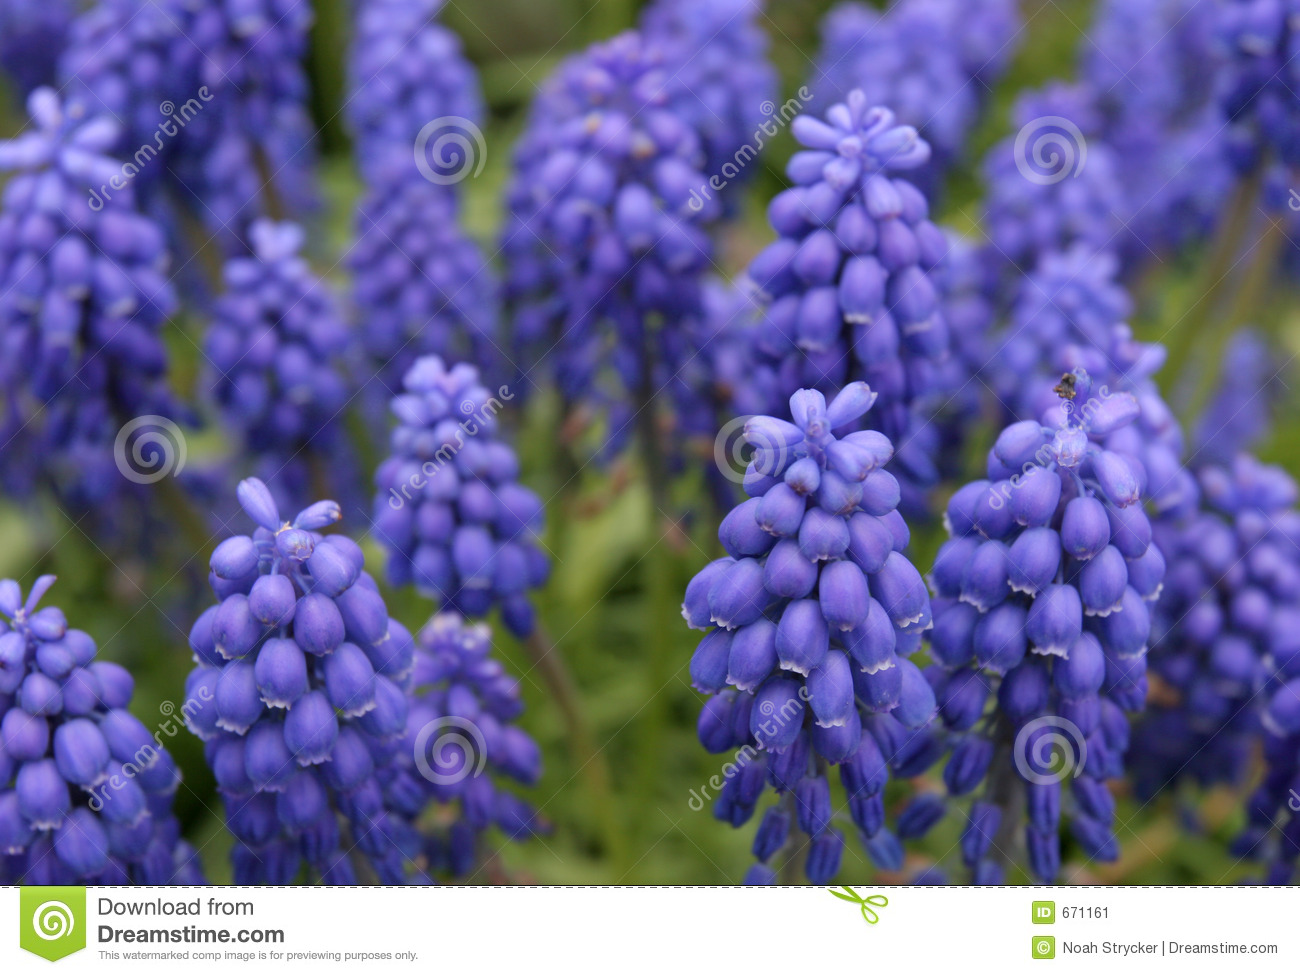 Blue and purple flowers images comousar blue and purple flowers images blue and purple flowers izmirmasajfo